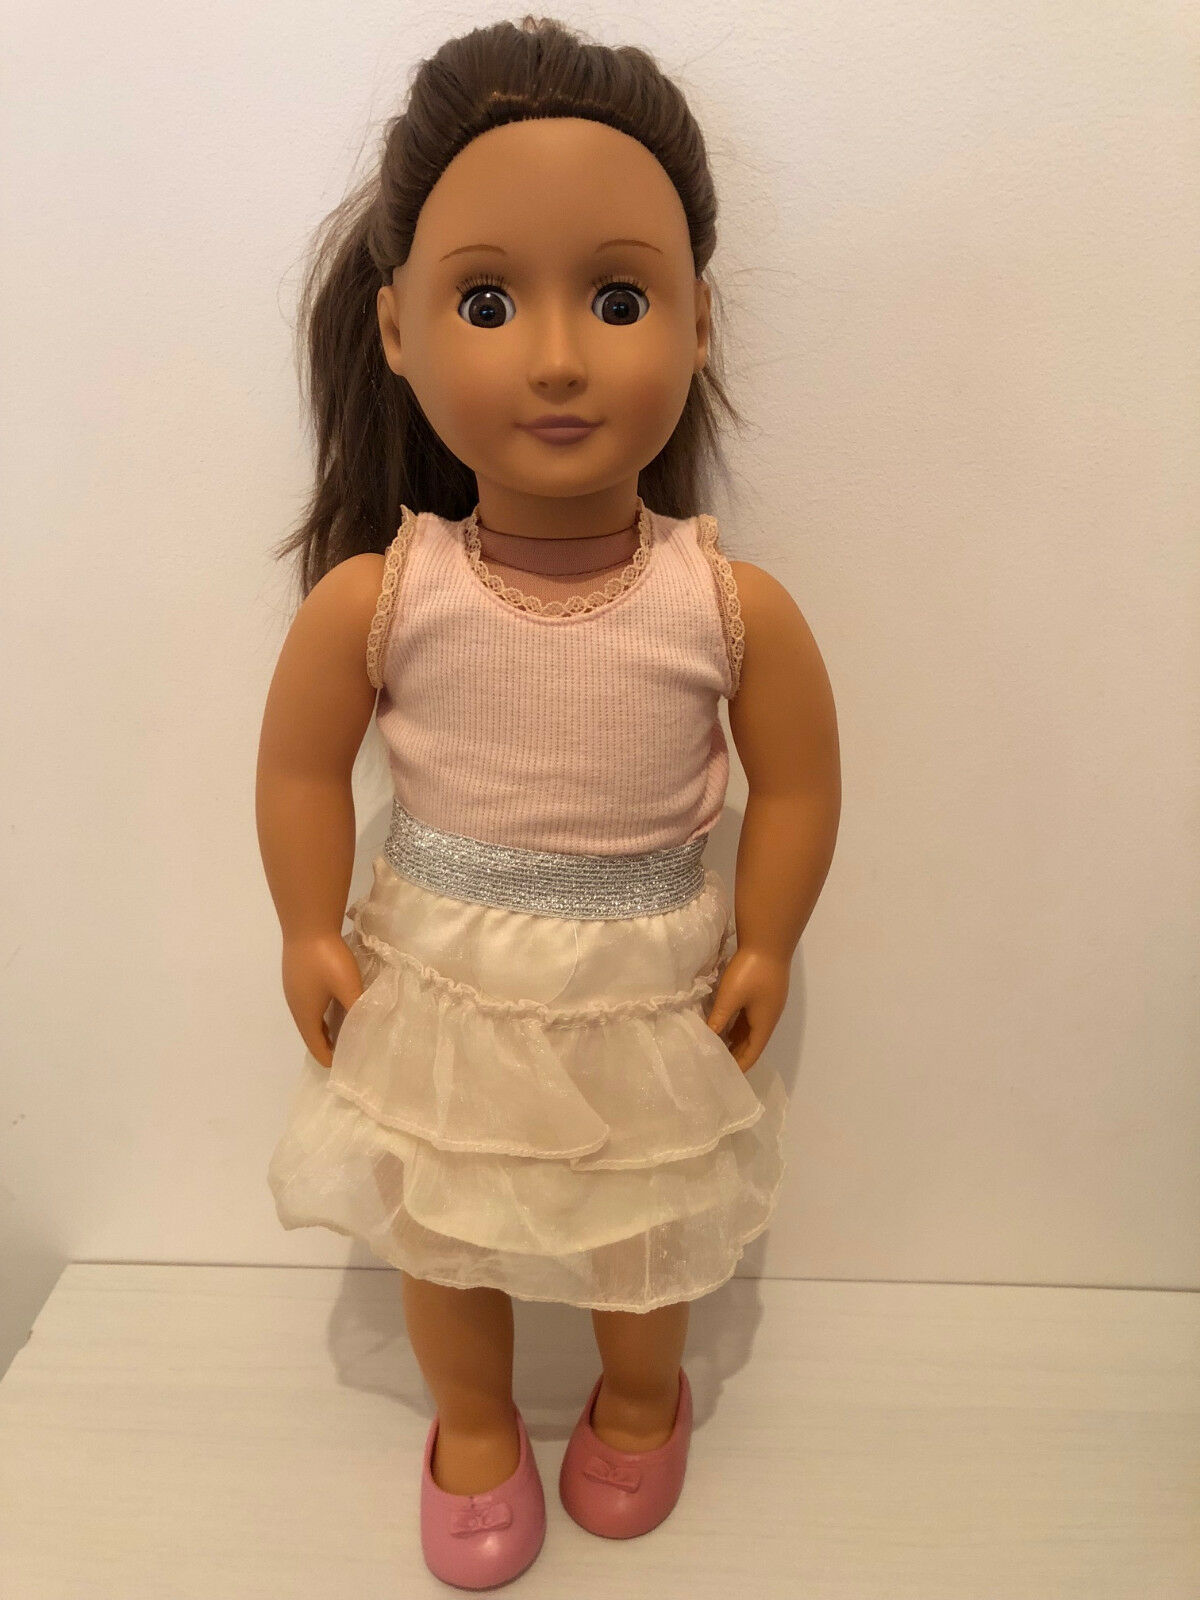 Second Hand Hand Hand OG Sienna Doll great condition Our generation fashion beautiful 302009